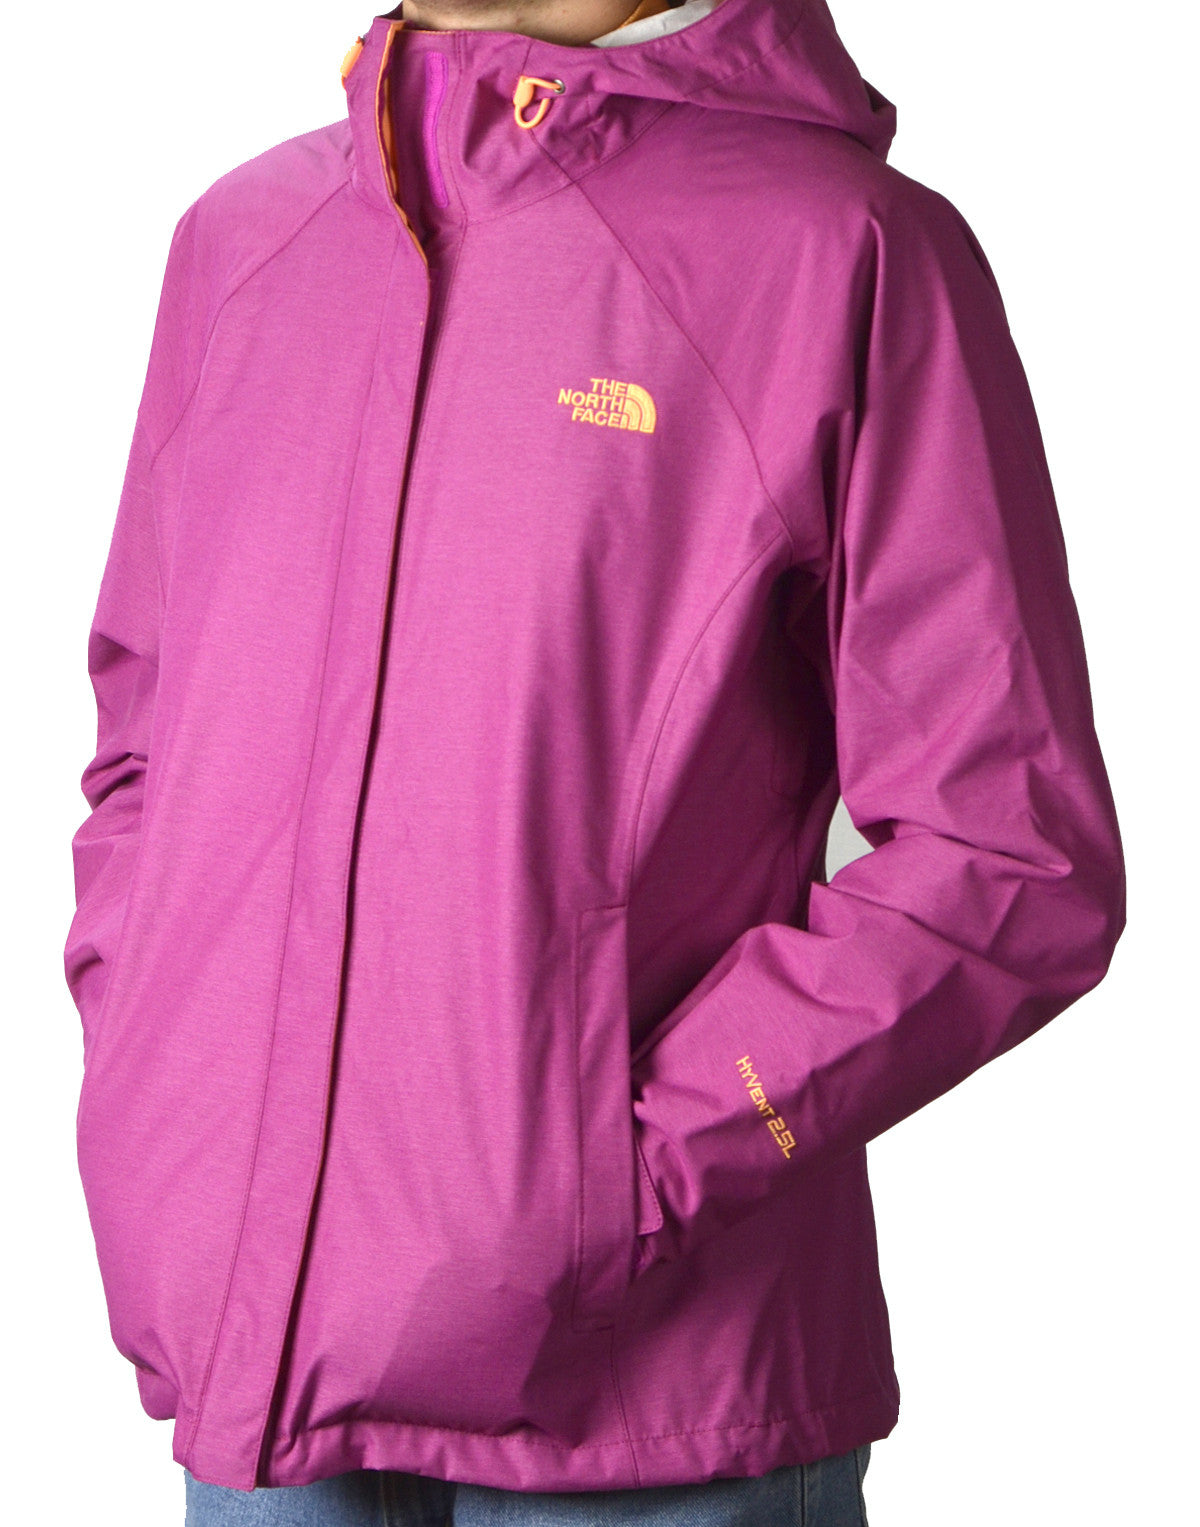 30722ce1d9d3 The North Face Women s Venture Jacket Dramatic Plum Heather - Andy Thornal  Company